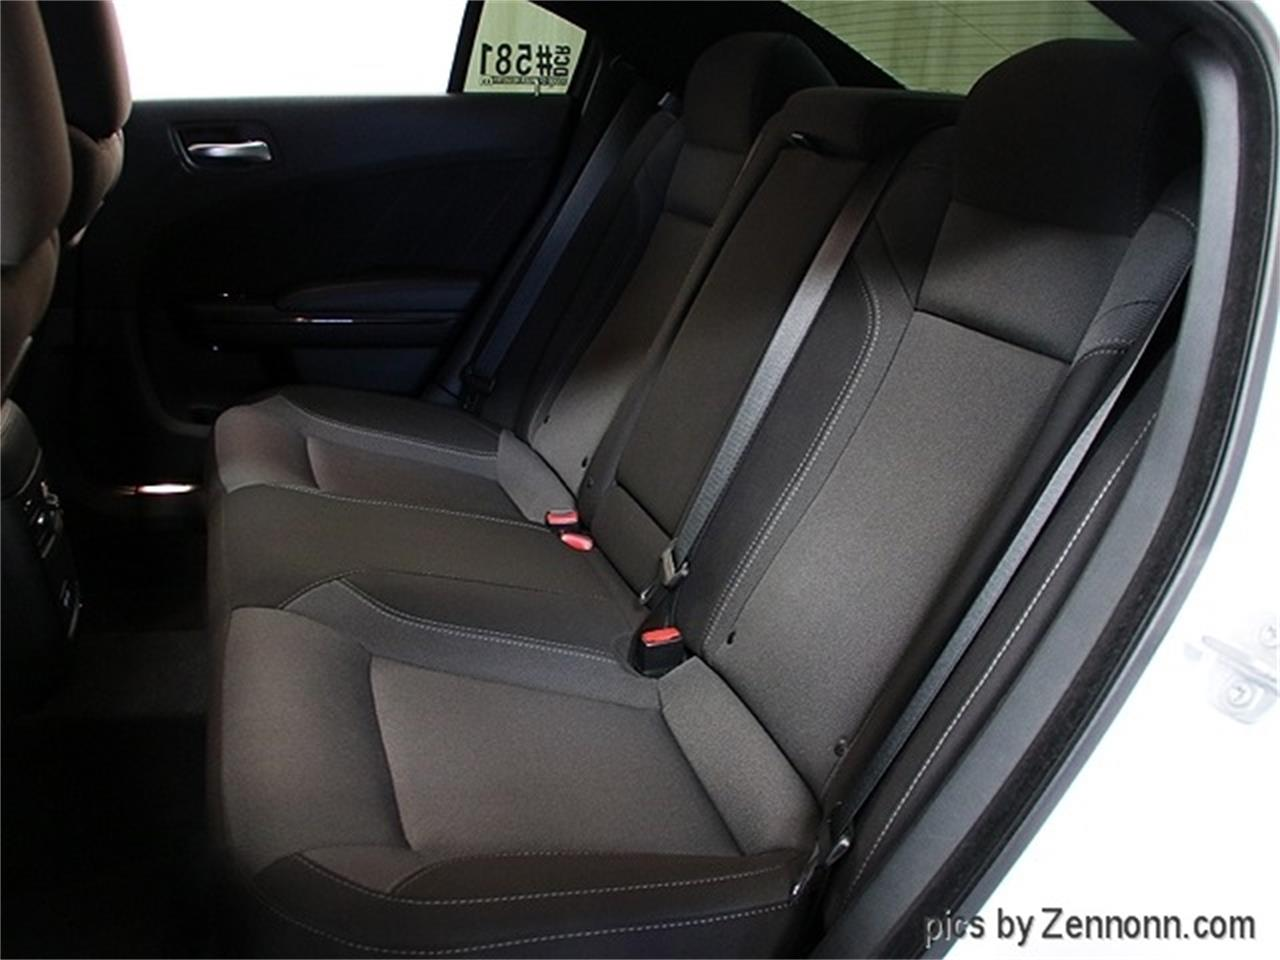 2018 Dodge Charger (CC-1270082) for sale in Addison, Illinois